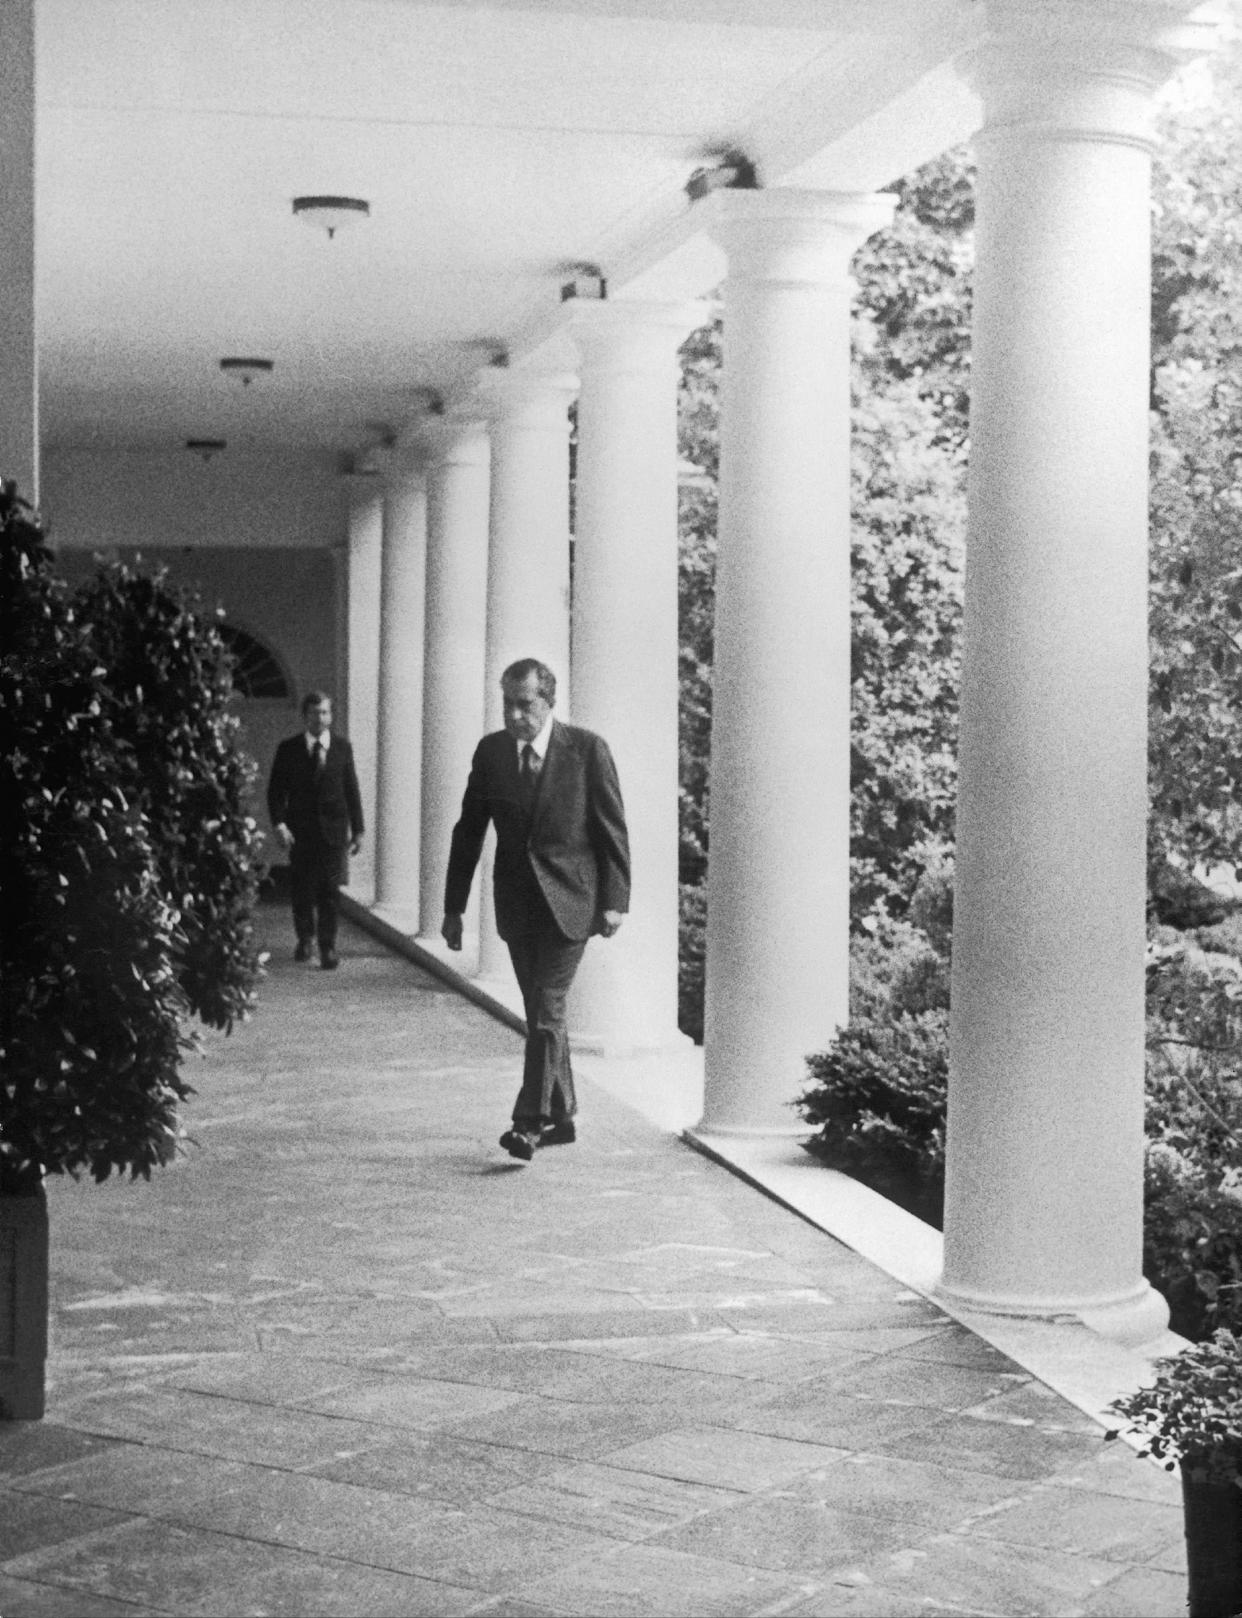 UNITED STATES - MARCH 09: President Richard Nixon Walking Through The Rose Garden At The White House In Washington On August 8, 1974, Before The Televised Announcement Of His Resignation, After Having Been Charged Because Of The Watergate Scandal. (Photo by Keystone-France/Gamma-Keystone via Getty Images)